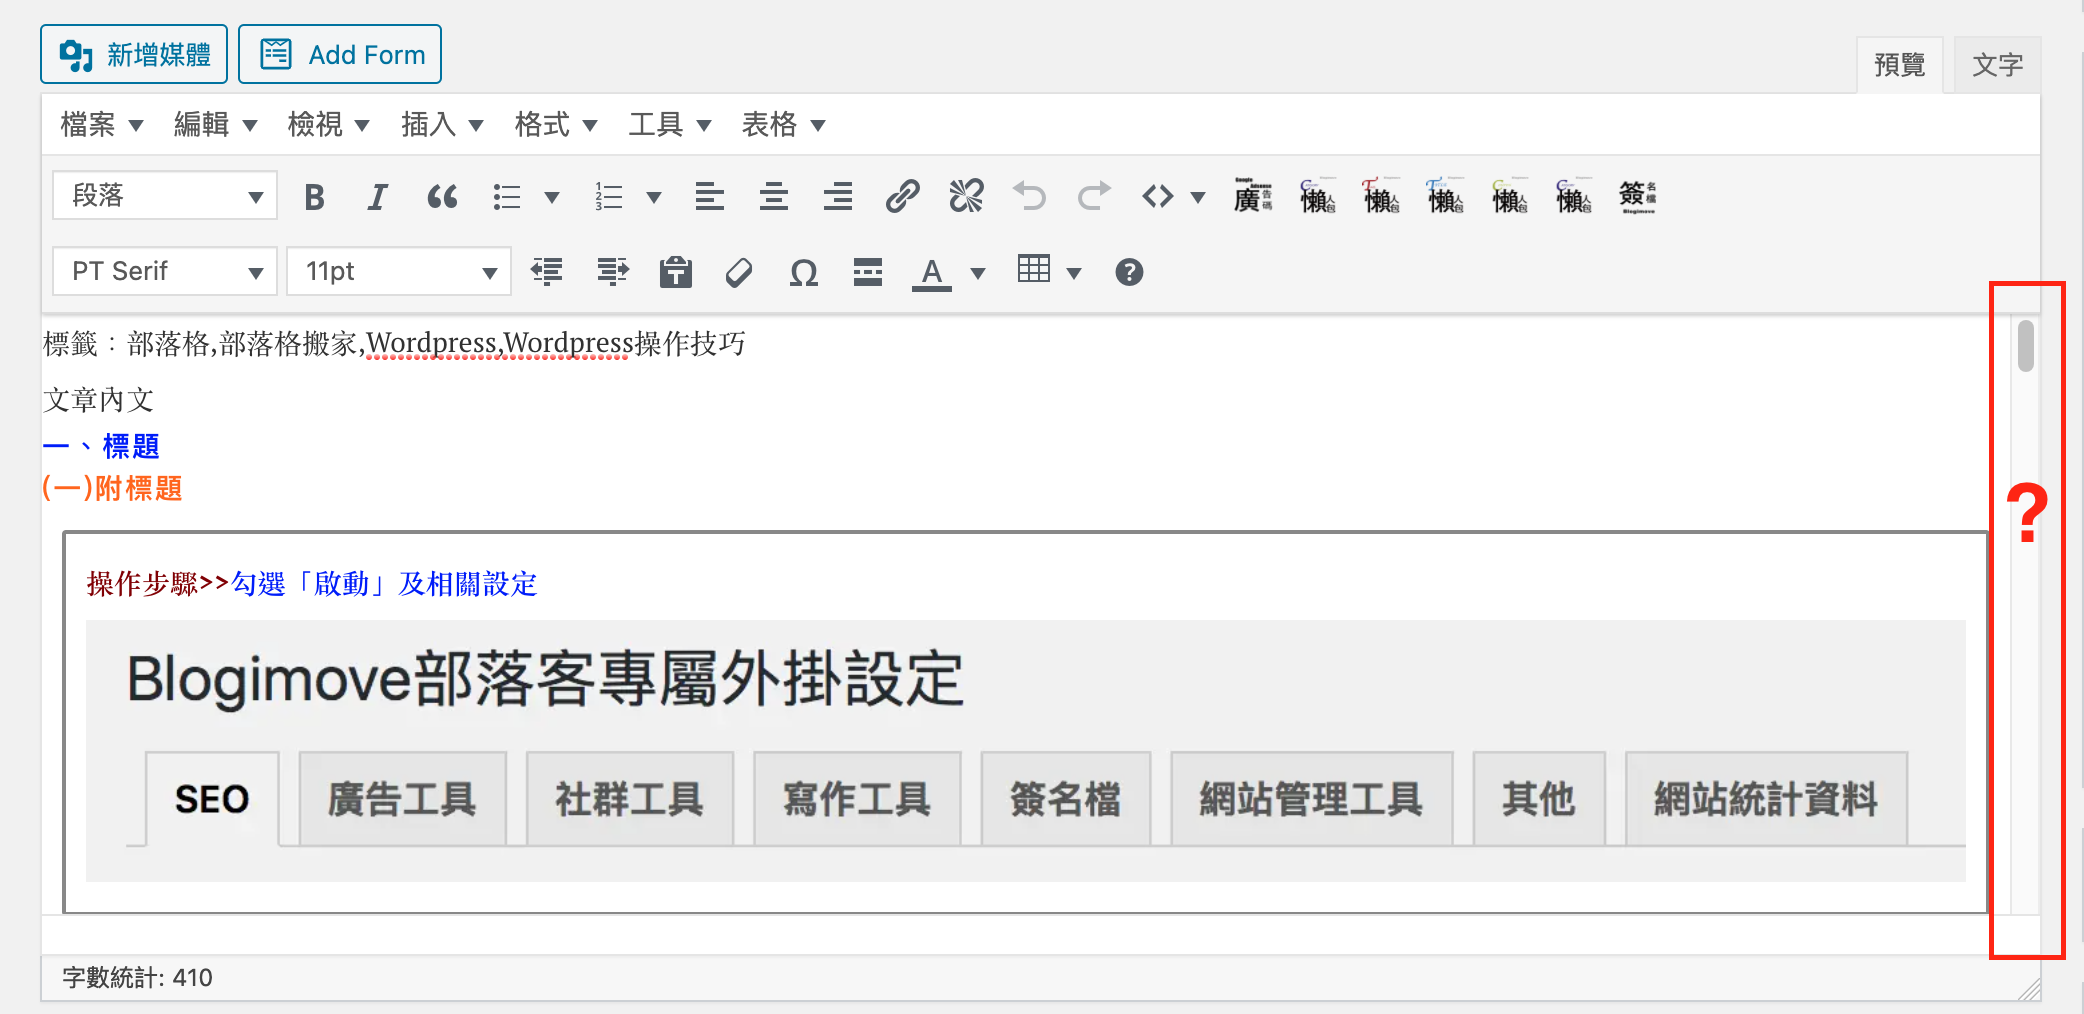 blogimove使用說明,Blogimove外掛,blogimove外掛操作技巧,blogimove操作手冊,blogimove部落客專屬外掛,telegram,wordpress,Wordpress操作技巧,部落格,部落格搬家 @Blog-i-Move